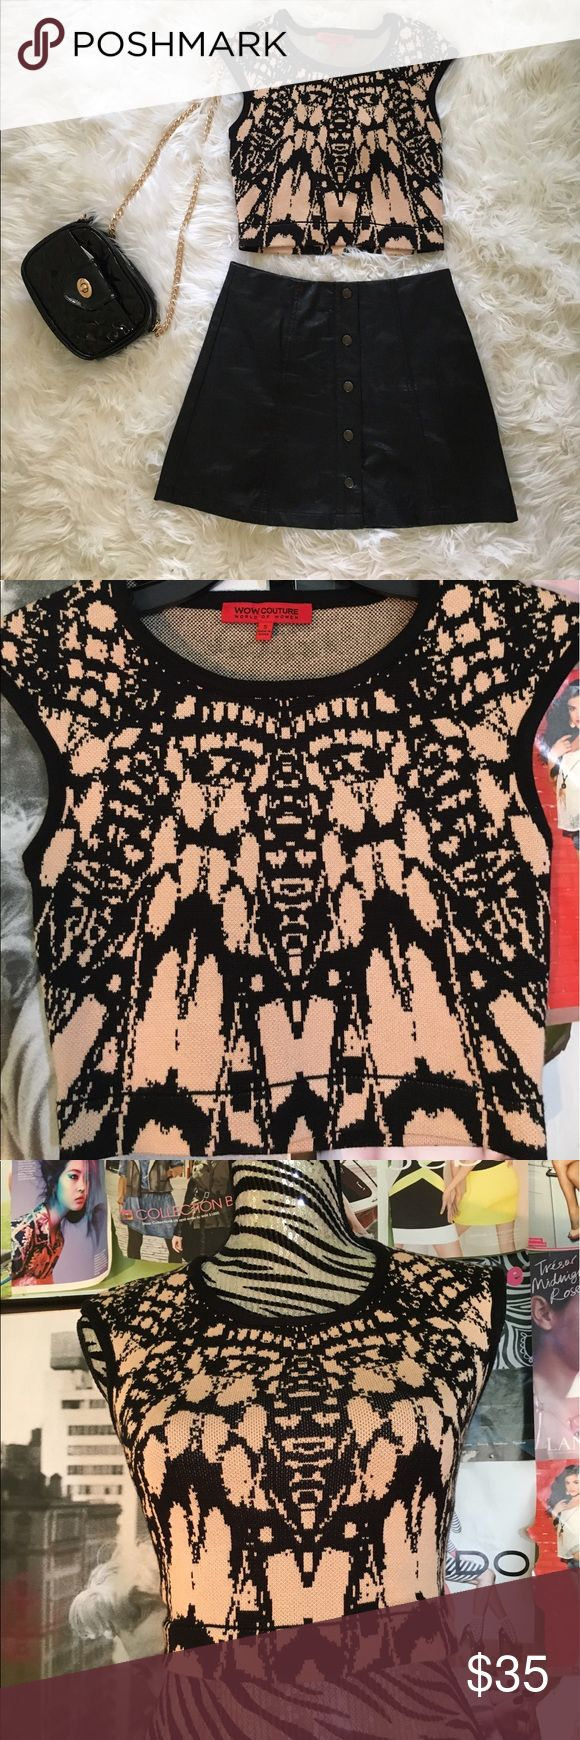 WOW Couture - Black and Cream Crop Top WOW Couture Black and Cream Crop Top - Small - Never Worn - 90% Rayon WOW couture Tops Crop Tops